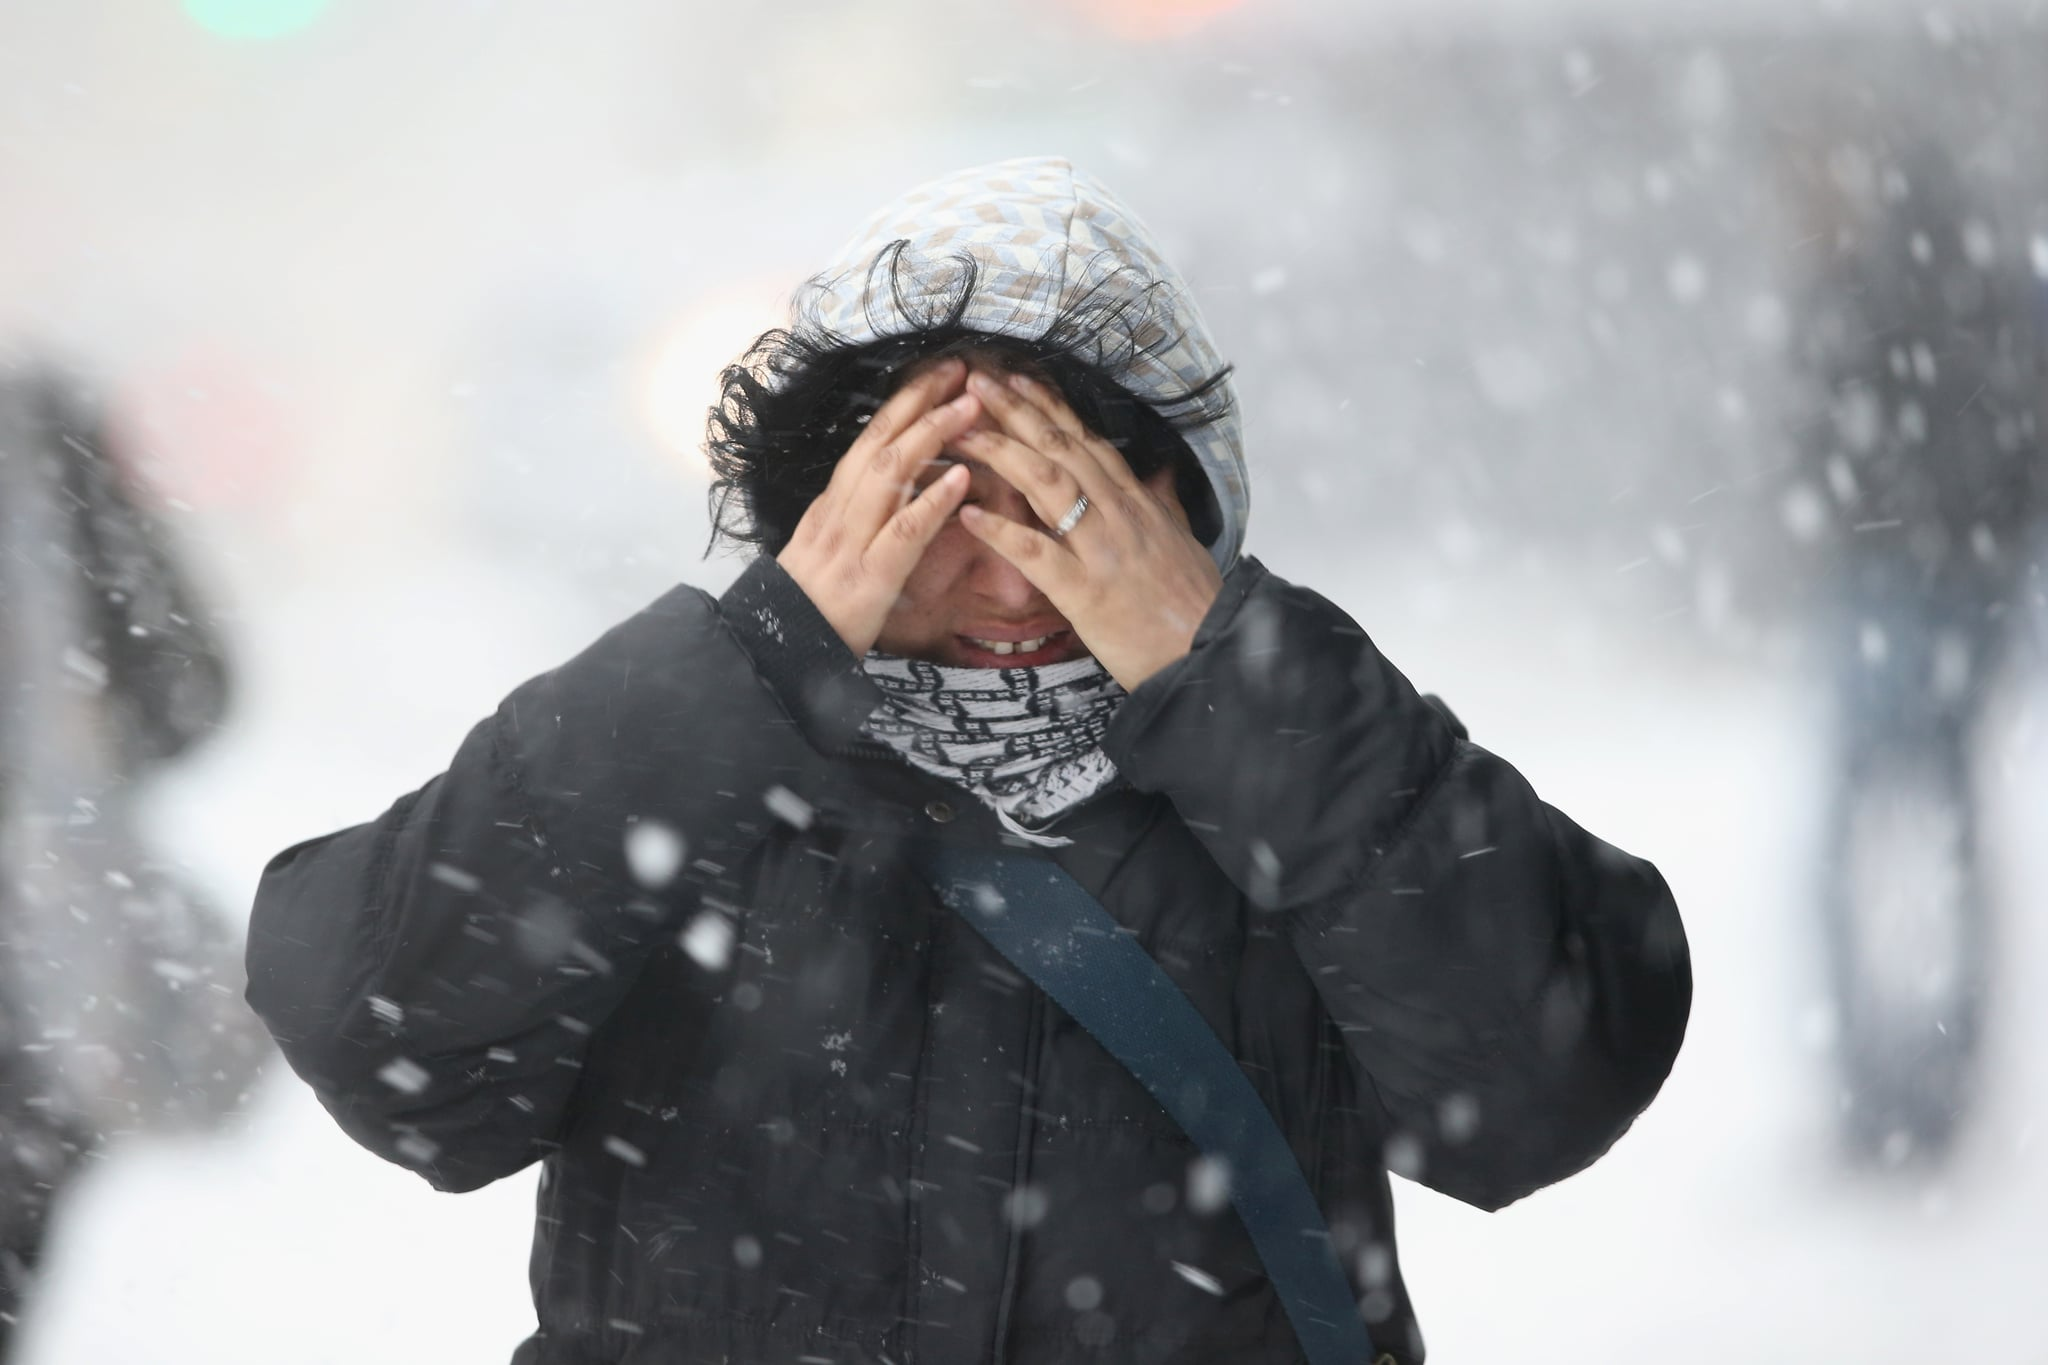 One woman covered her face as she walked through the snow in NYC.